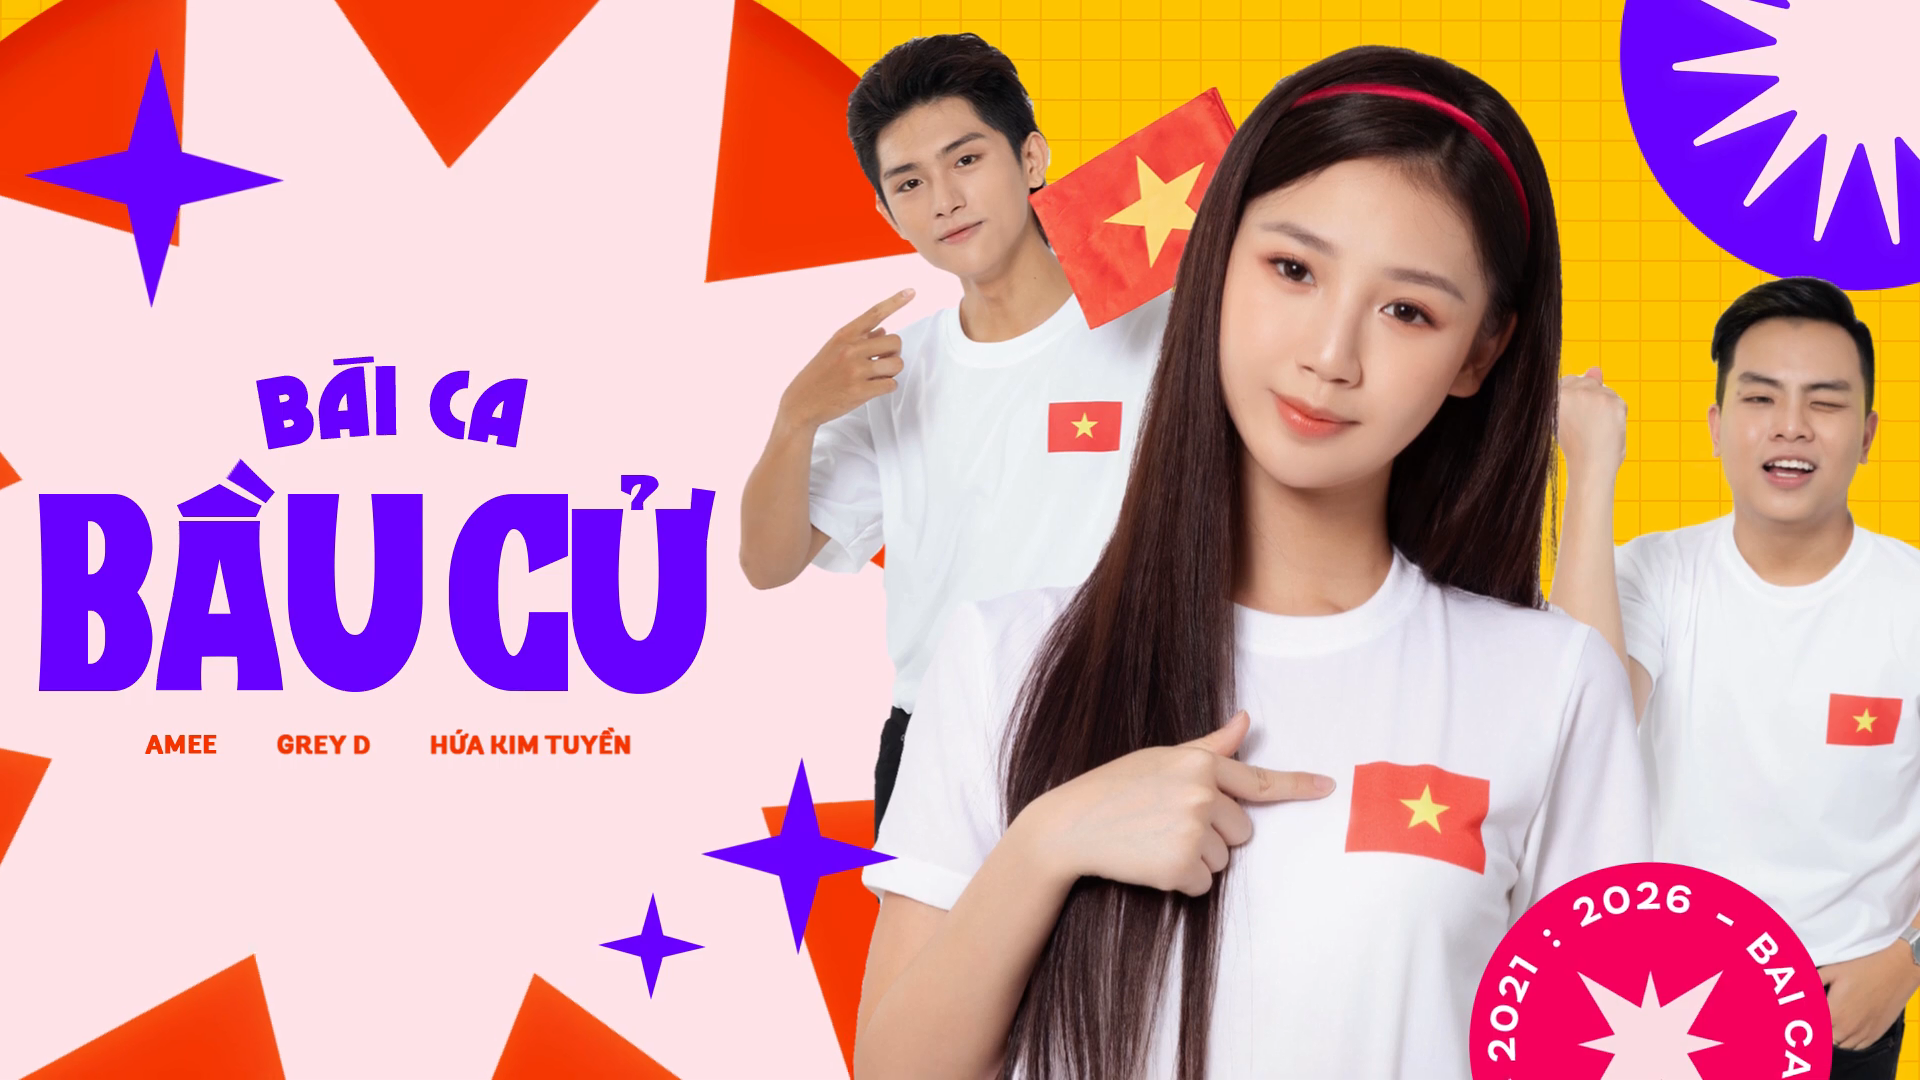 Music video set to inspire voting at Vietnam's elections